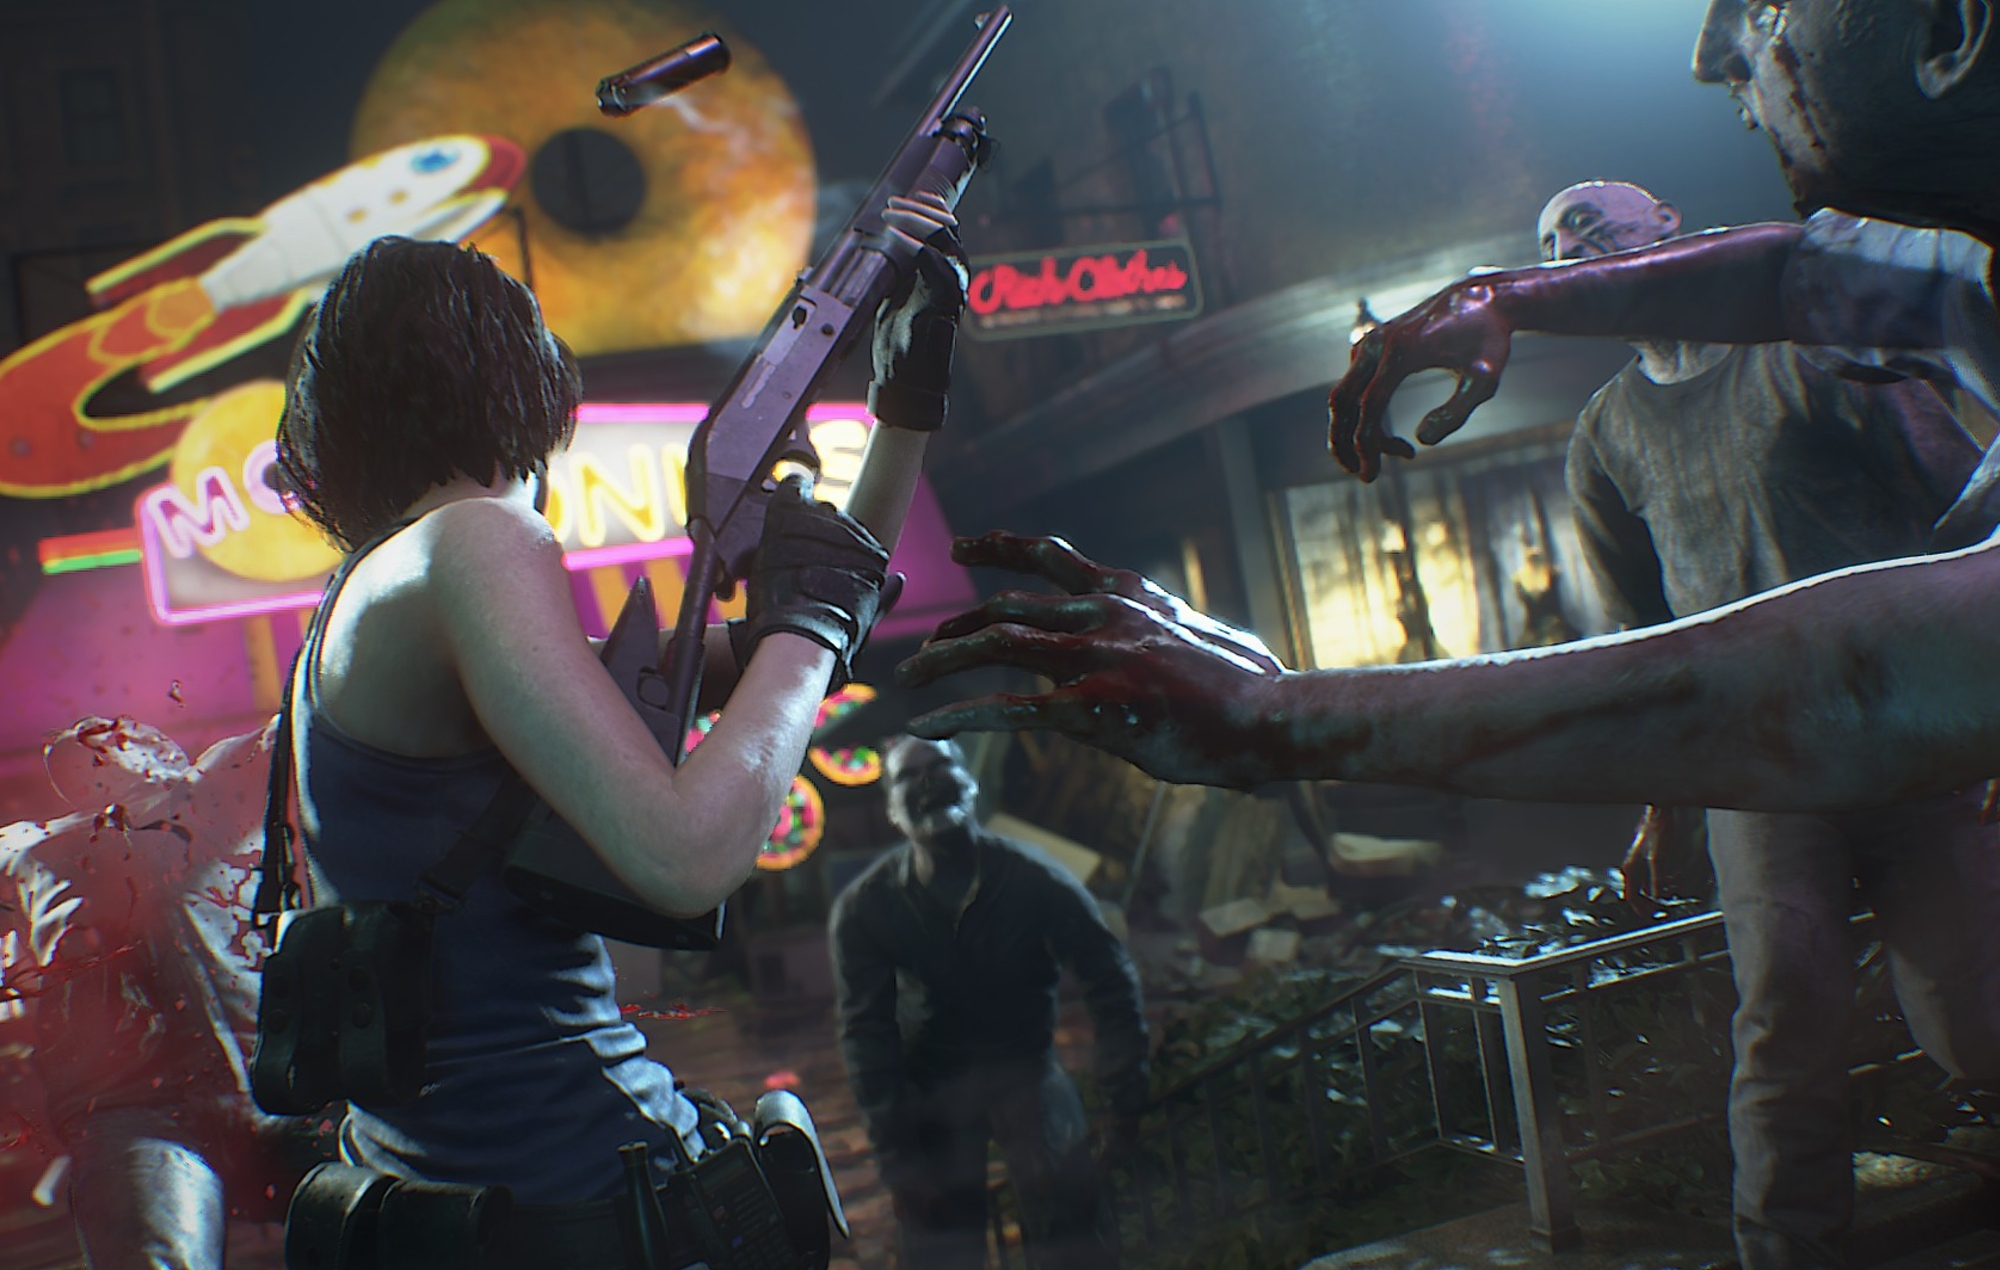 'Resident Evil 3 Remake' will not be getting any DLCs | NME